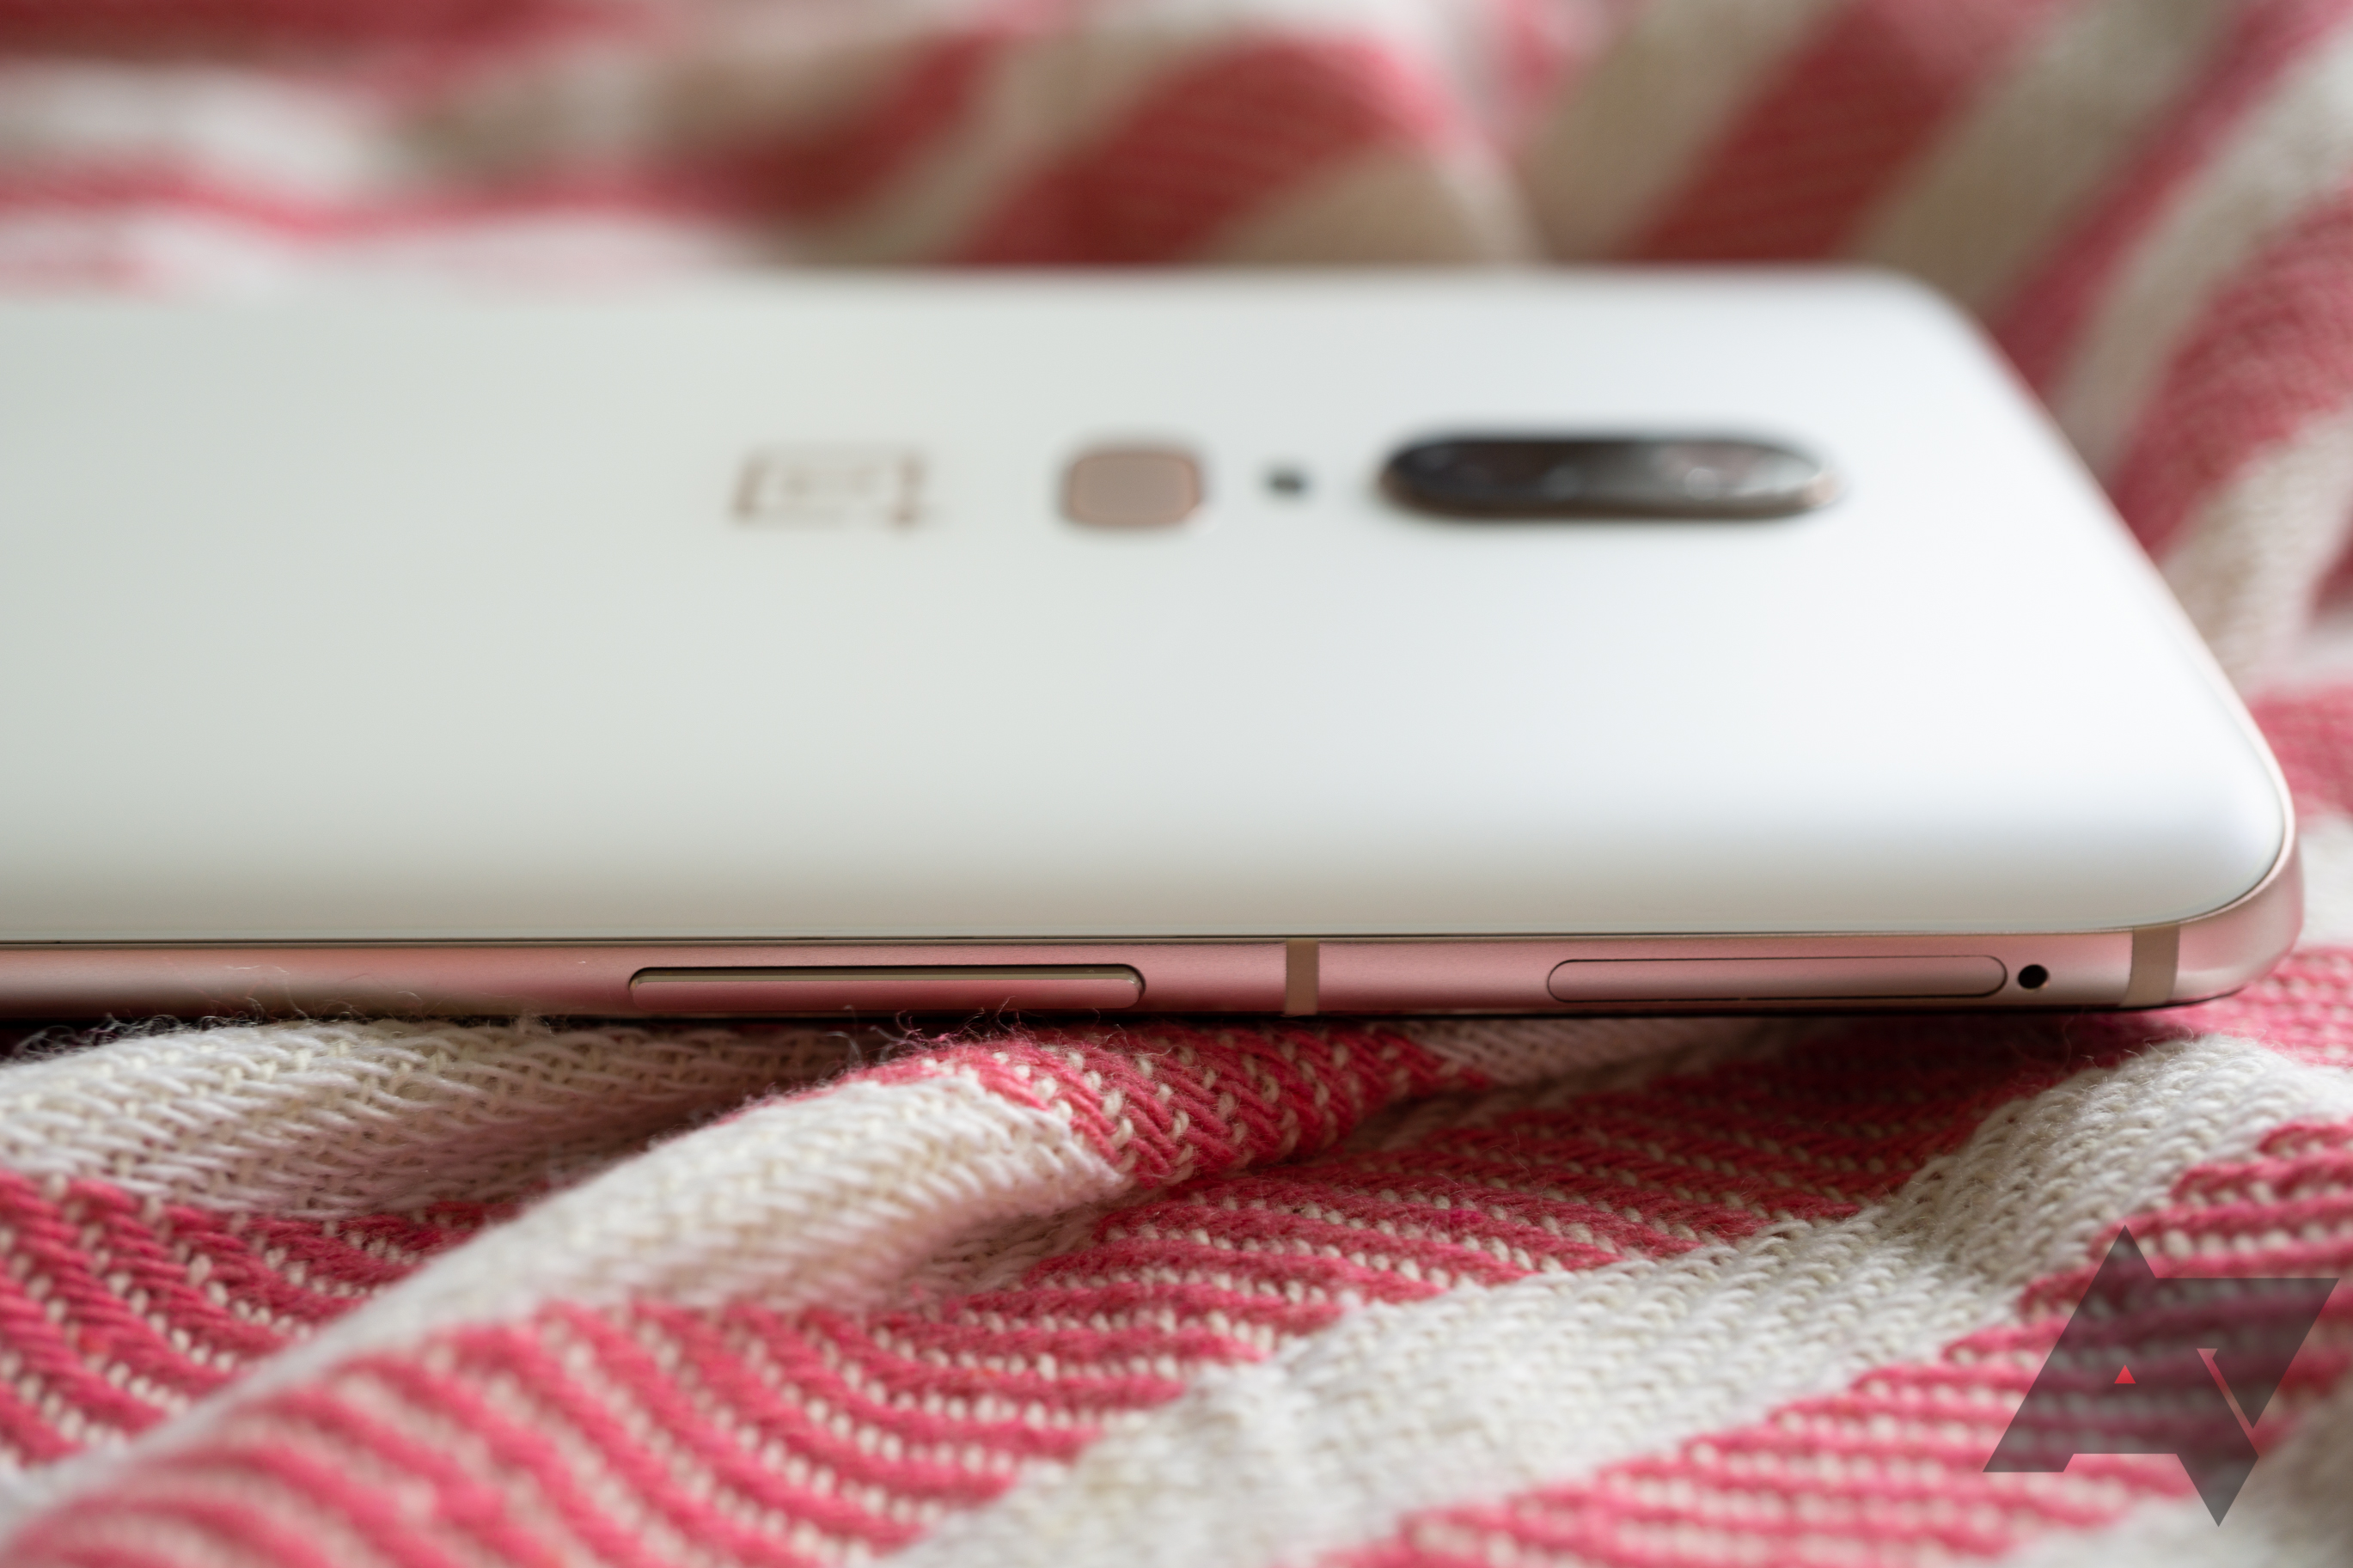 Buy the OnePlus 6 in Silk White